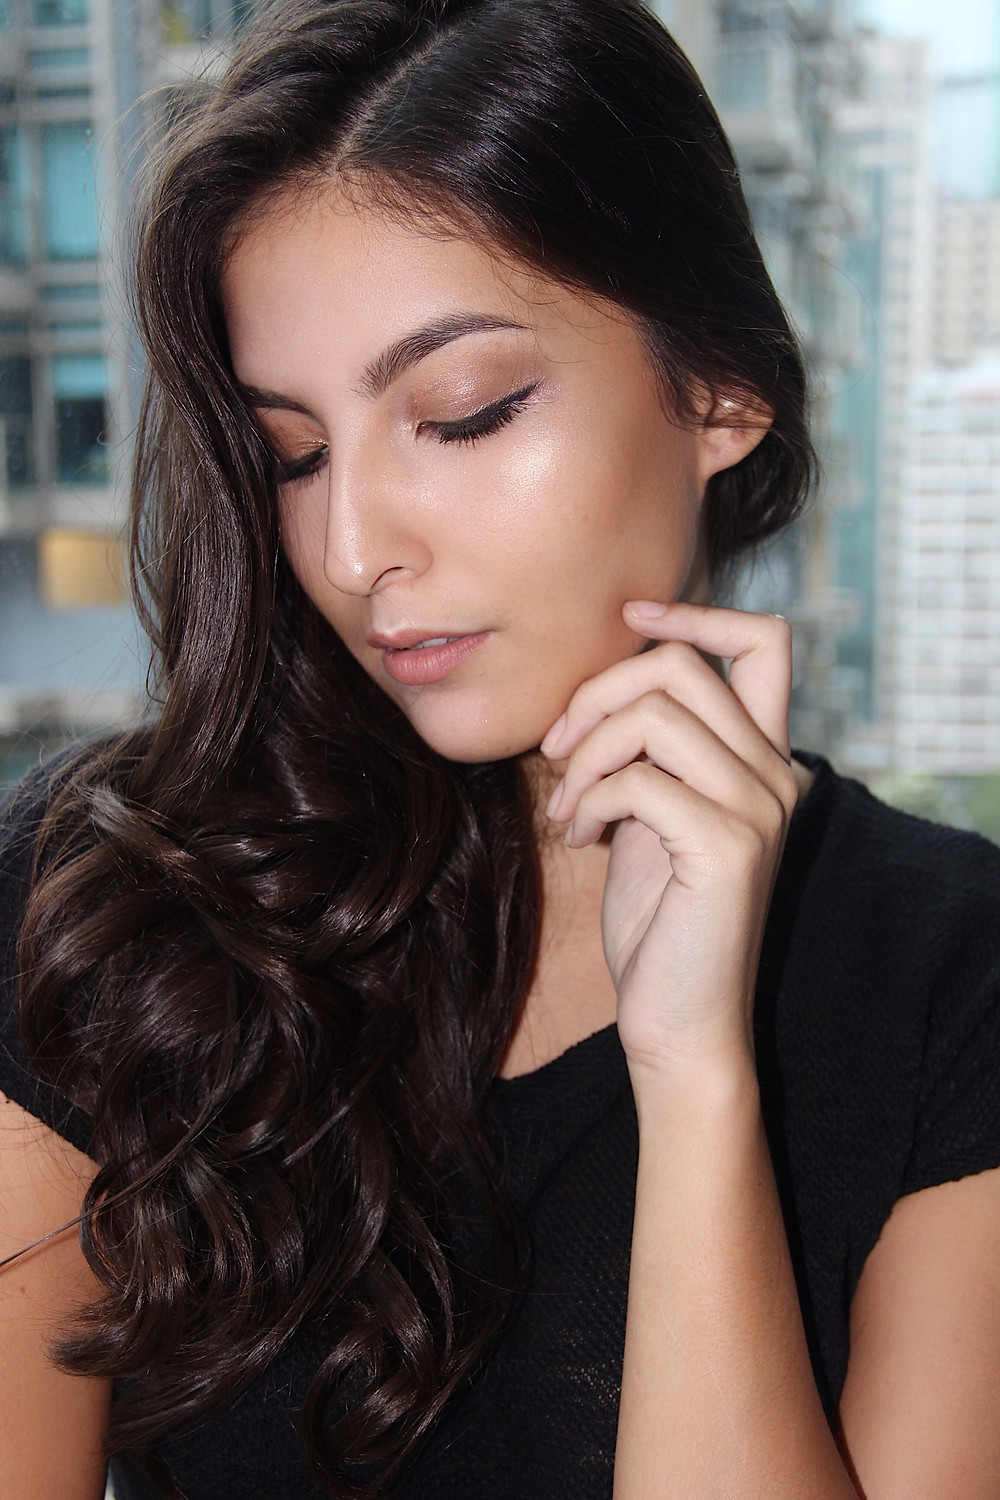 Professional Makeup for Business